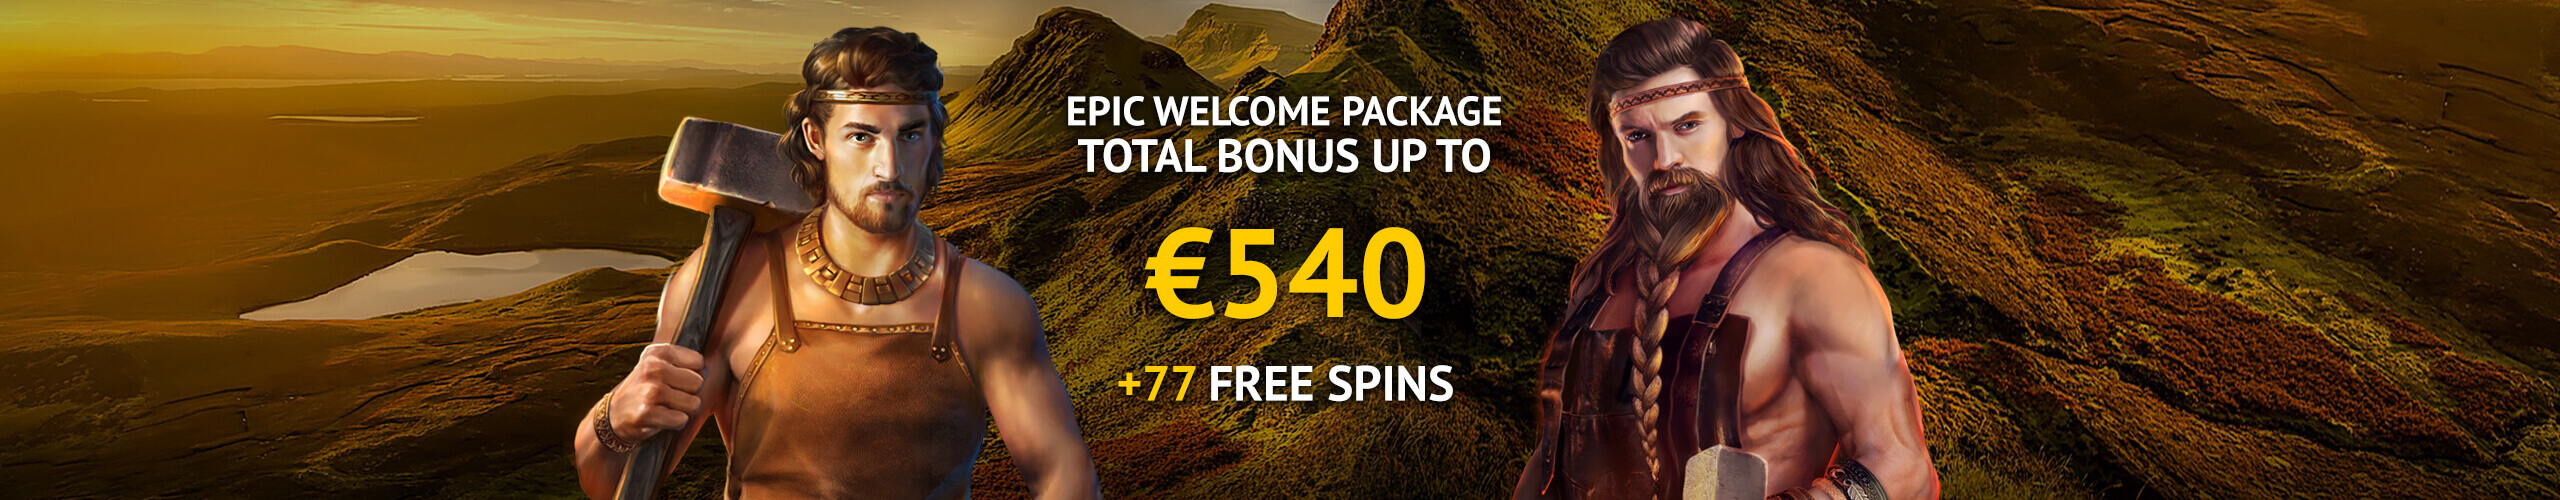 7 Gods Casino Welcome Bonus